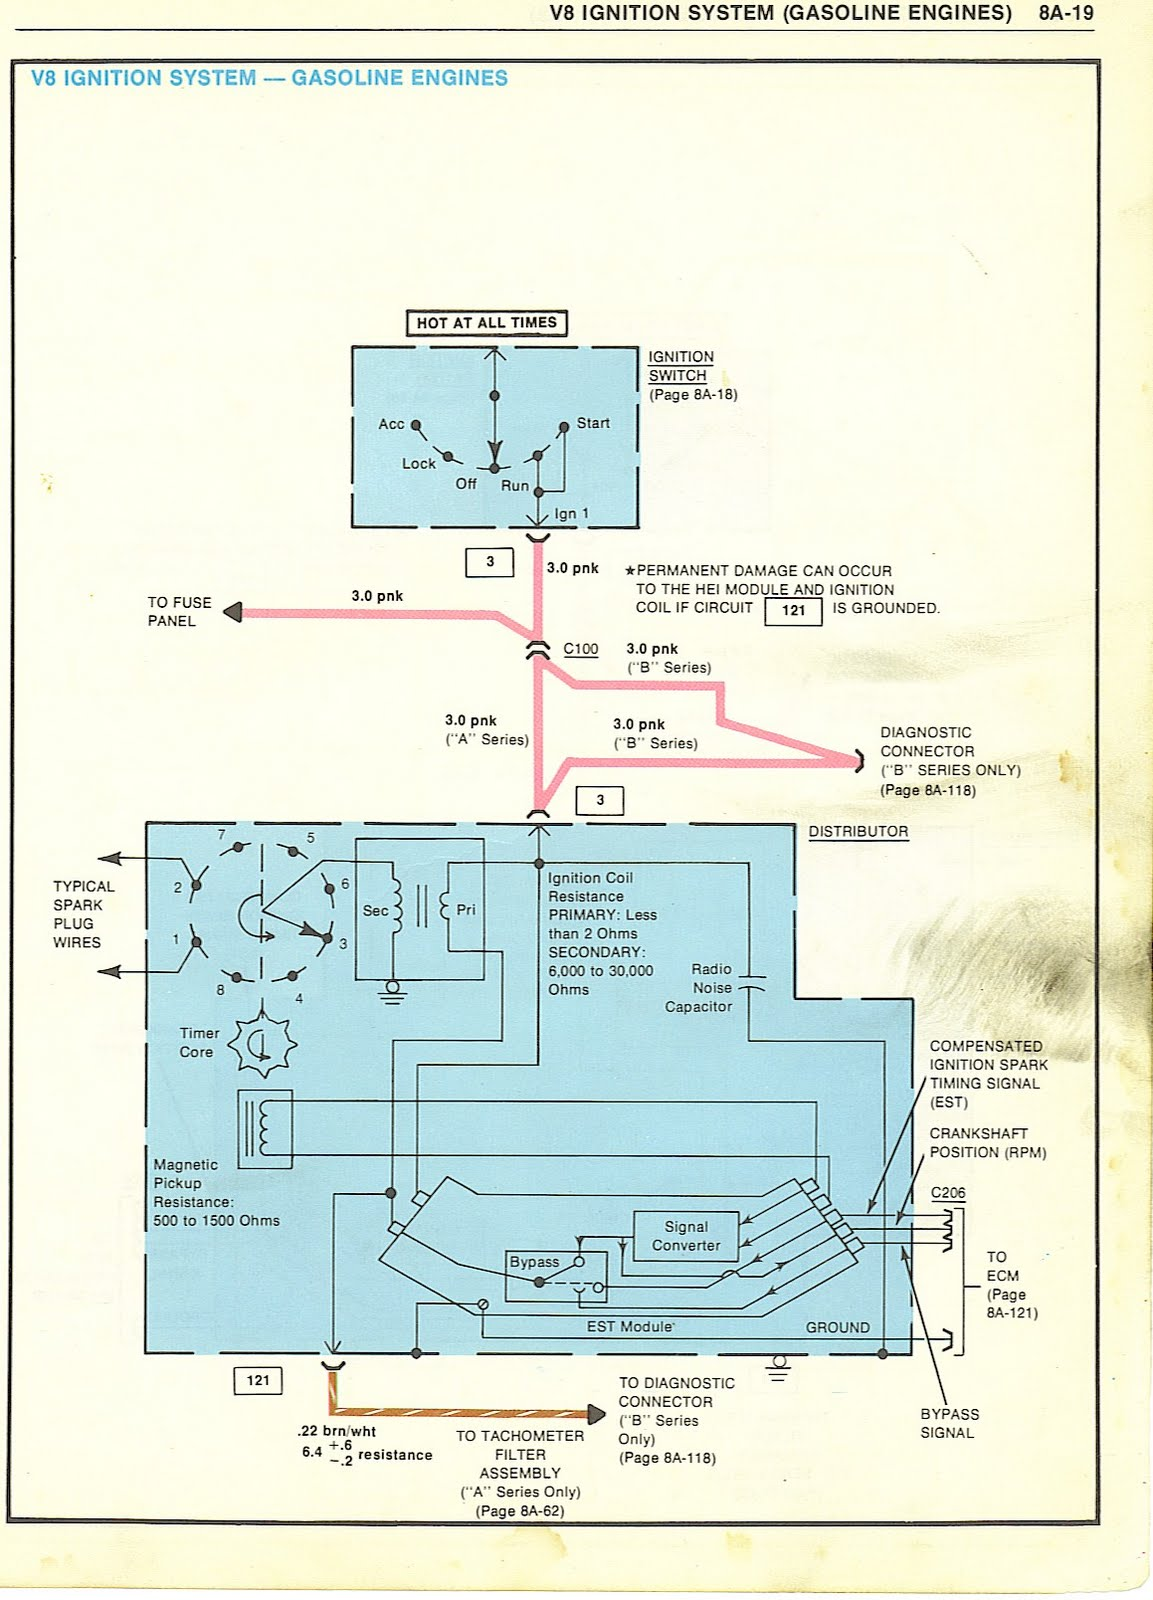 1996 chevy astro ignition wiring diagram free download free auto wiring diagram: may 2011 jacobs ignition system wiring diagram free download